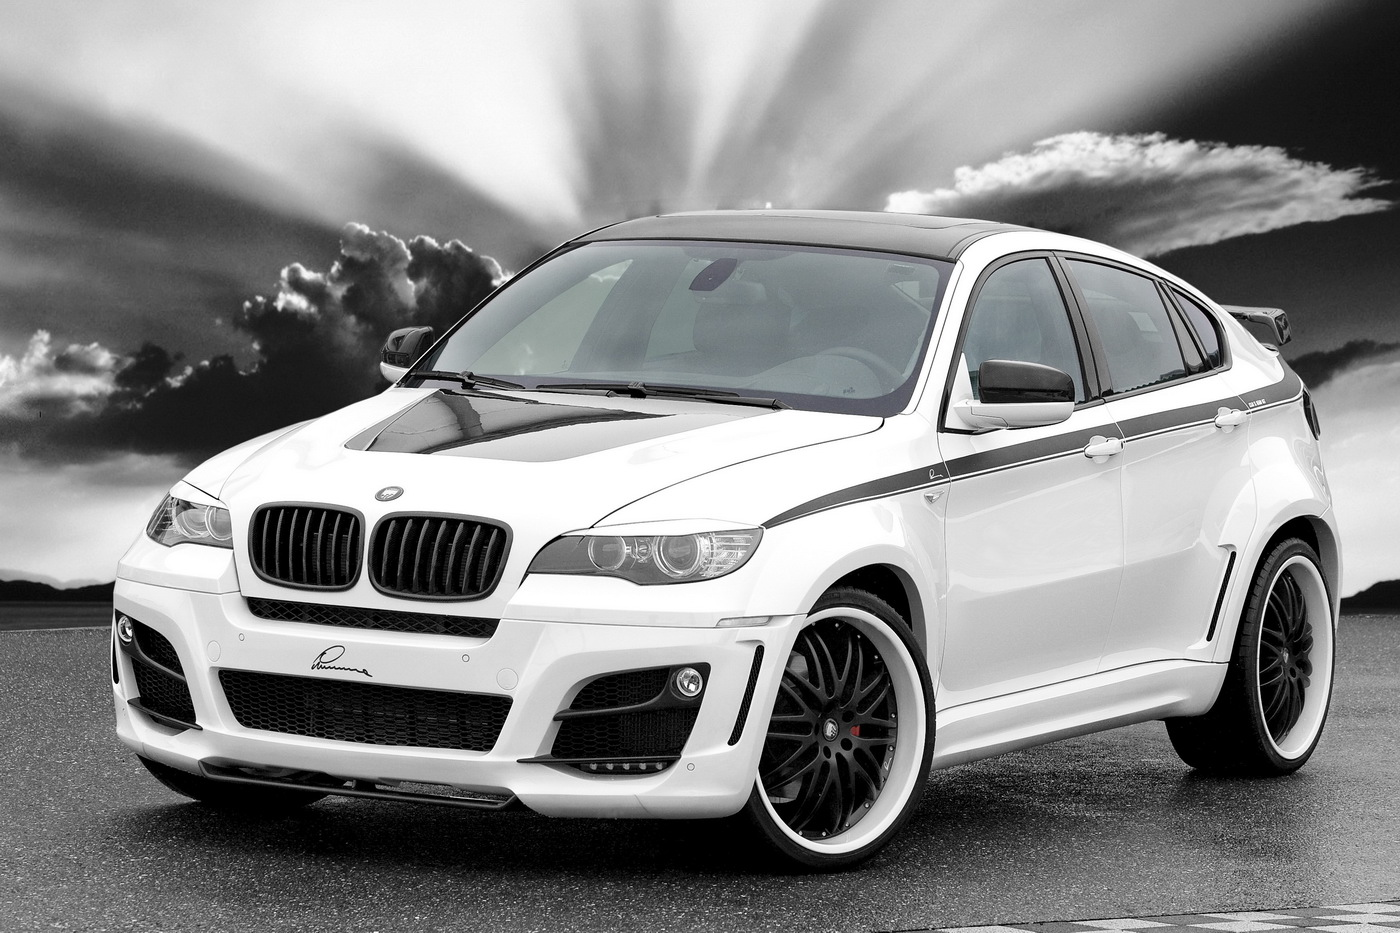 Modified Bmw X6m By Hamann Lumma Clr Videos Car Photos Modified Bmw X6m By Hamann Lumma Clr